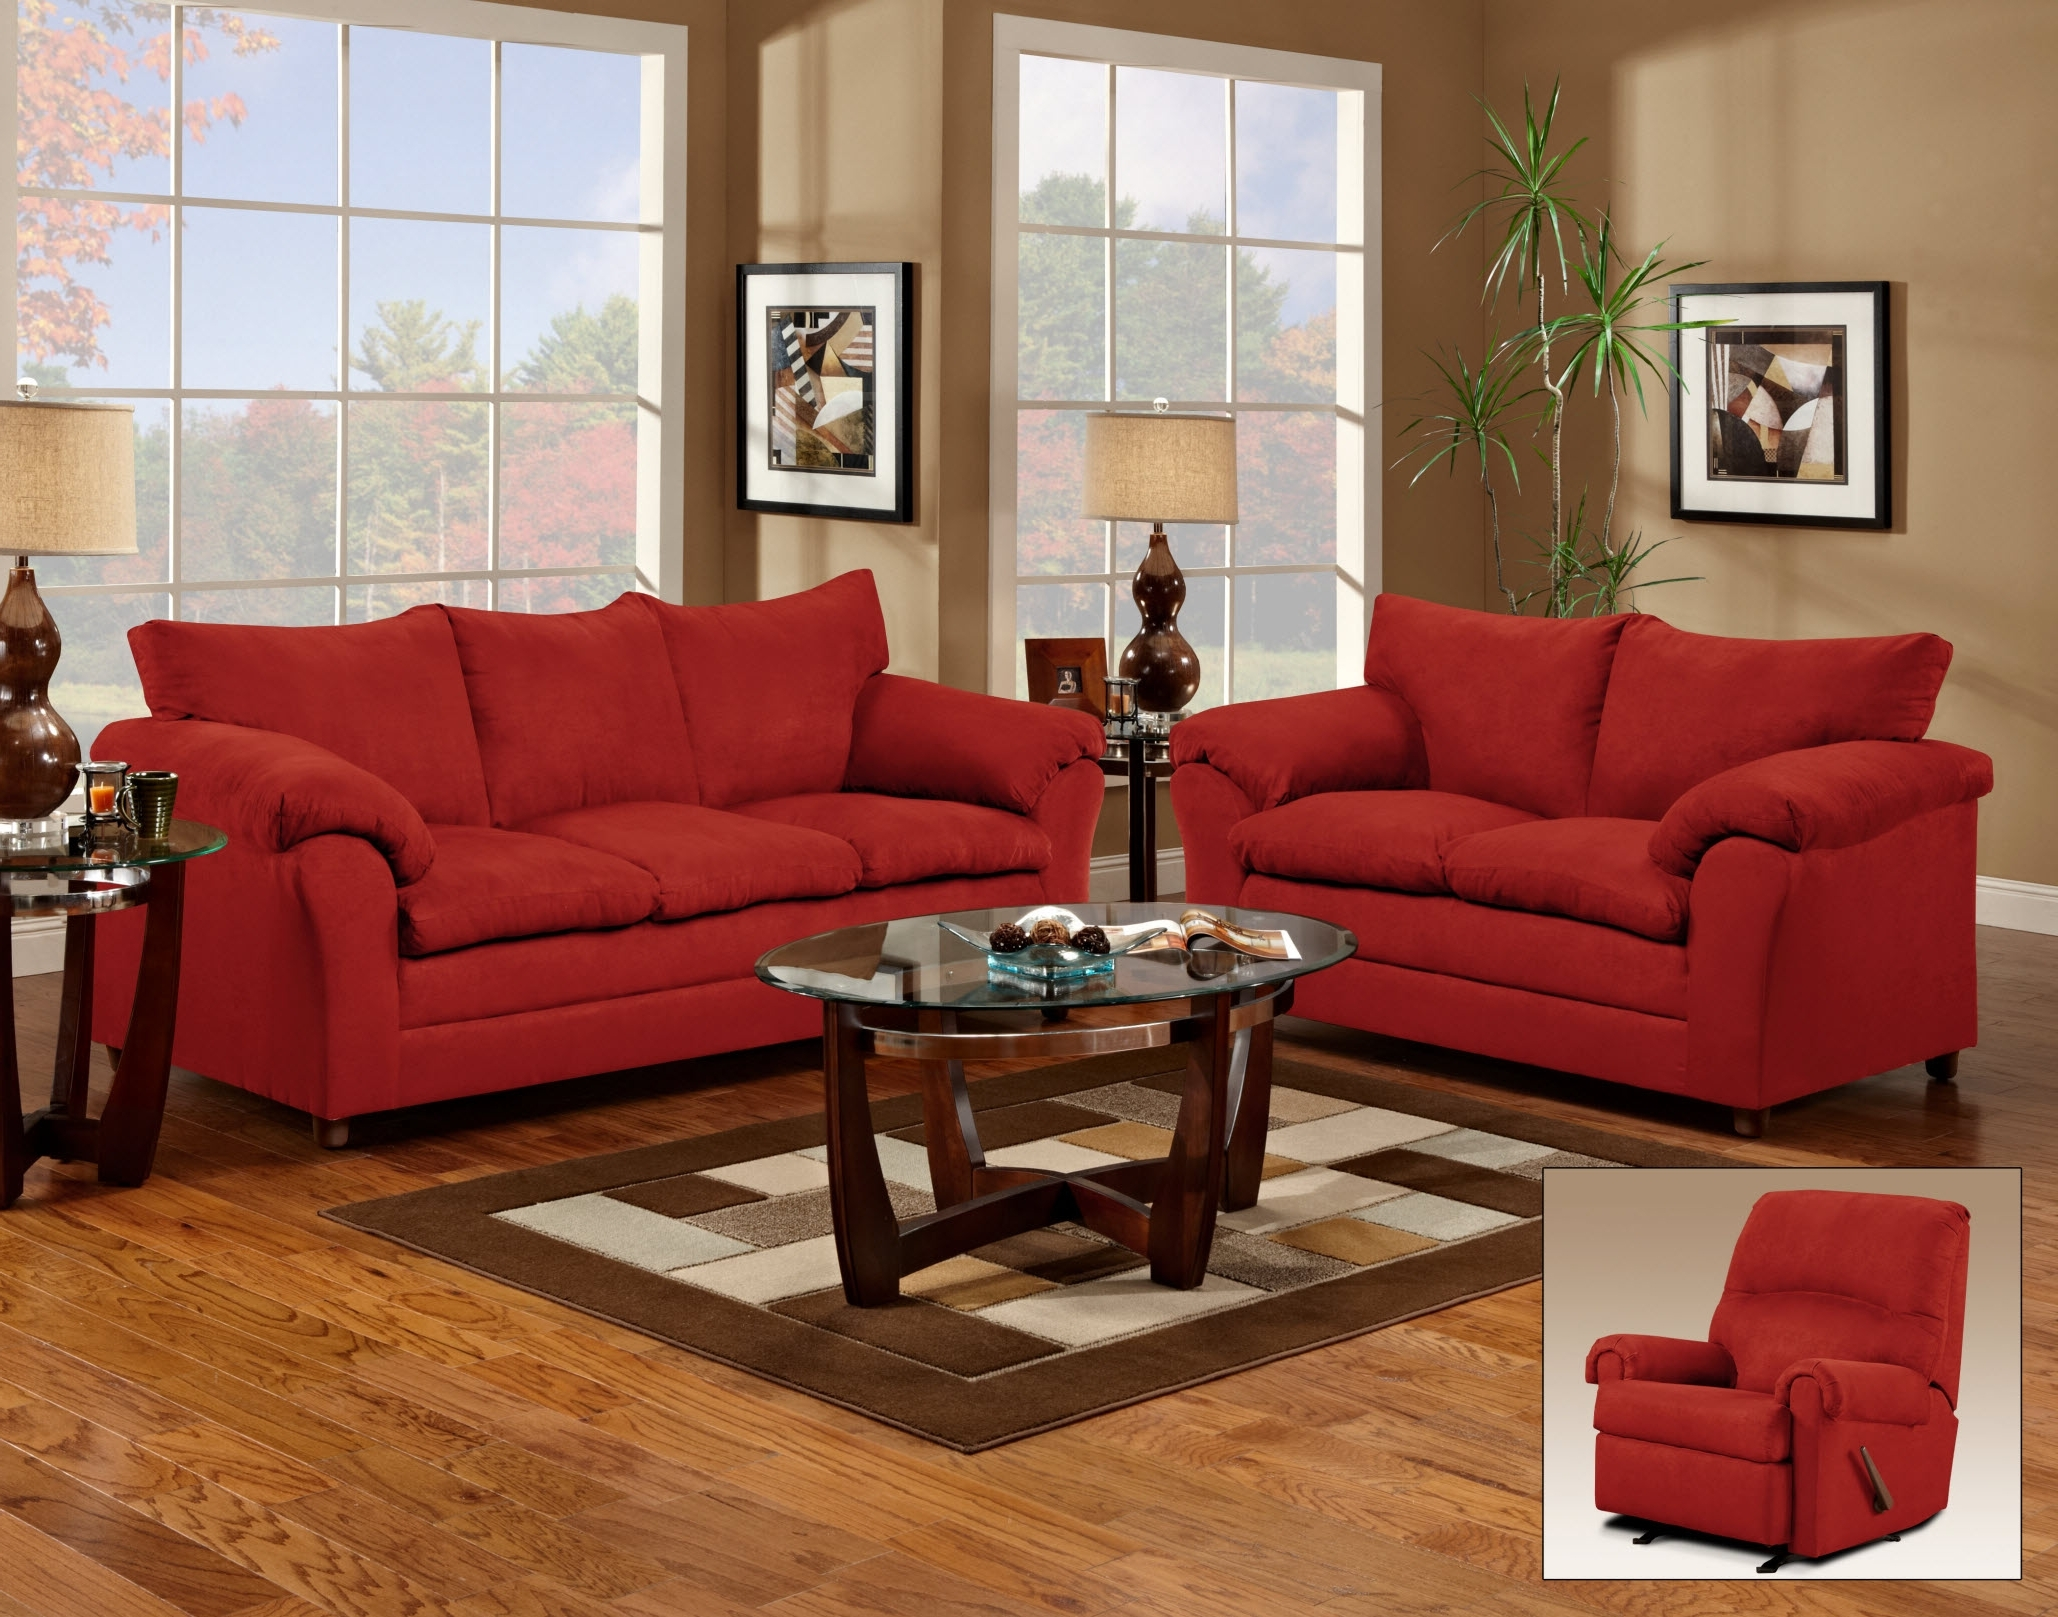 Well Known Microfiber Sectional Couch Microfiber Sectional Couch With Inside Red Leather Reclining Sofas And Loveseats (View 15 of 15)